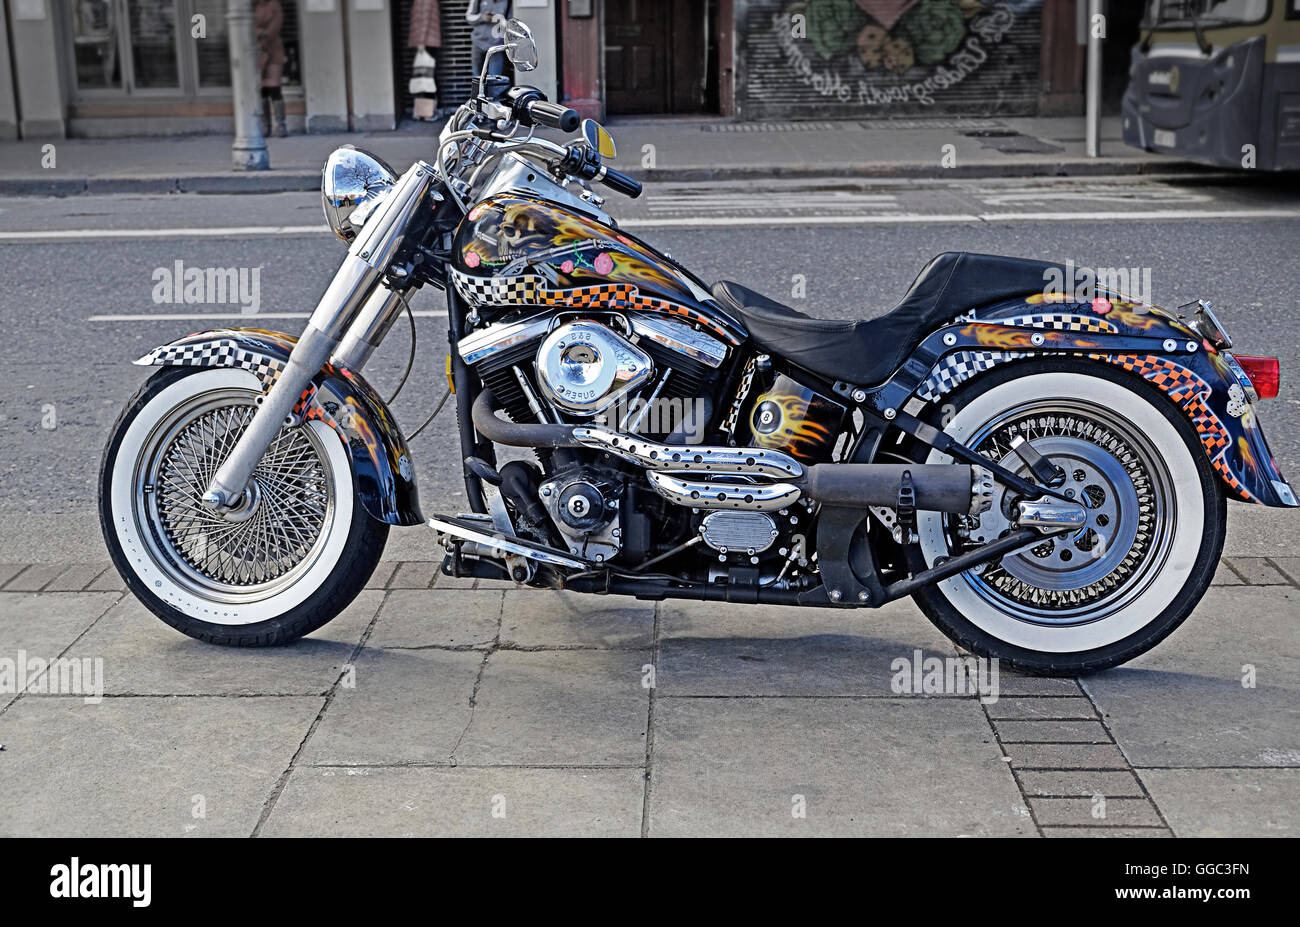 A highly customized Harley Davidson Motorcycle parked on a Dublin street, - Stock Image